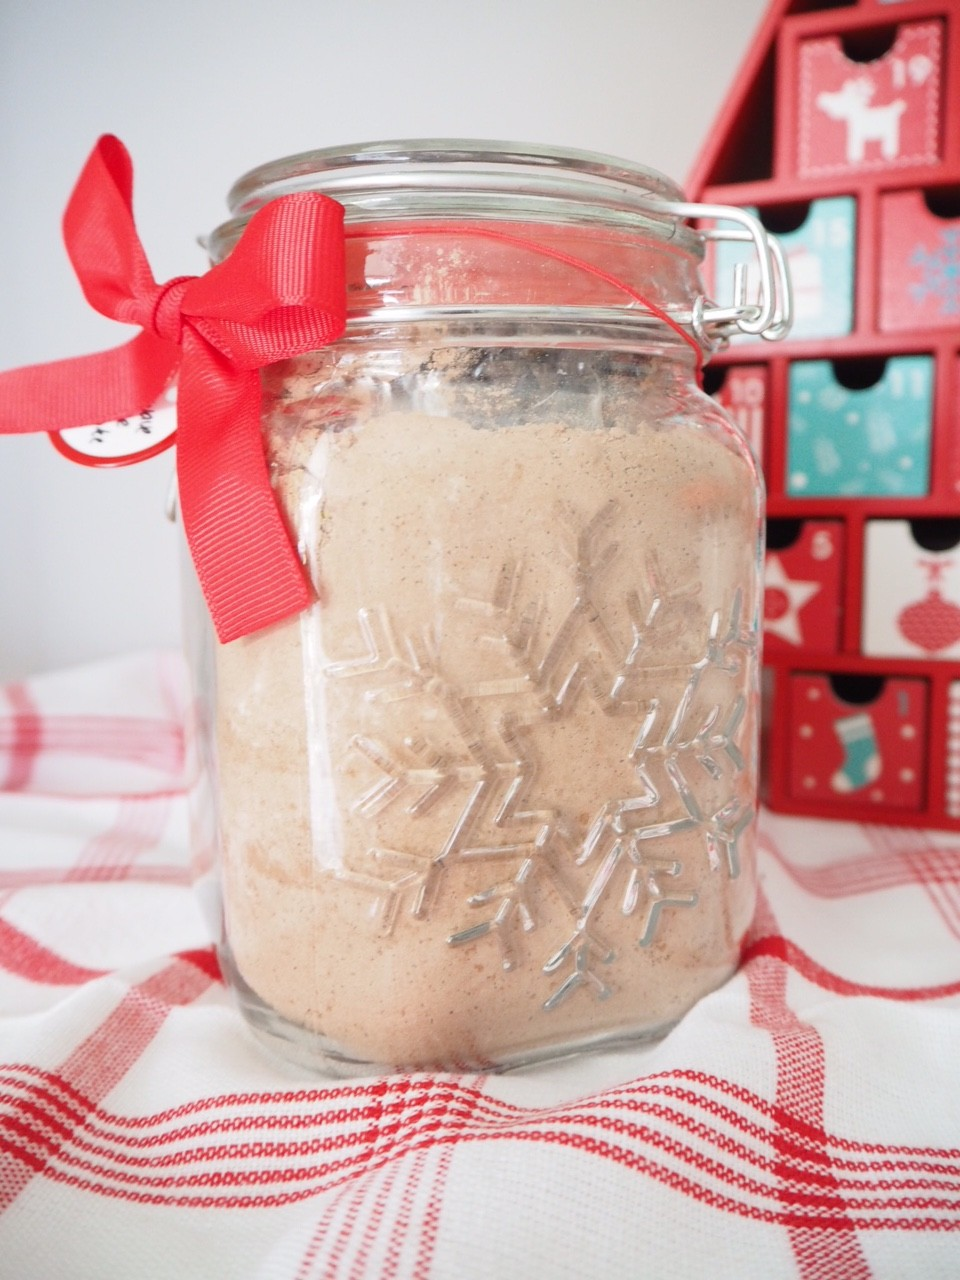 Homemade Gift Chocolate Mug Cake Mix Cooking For Busy Mums